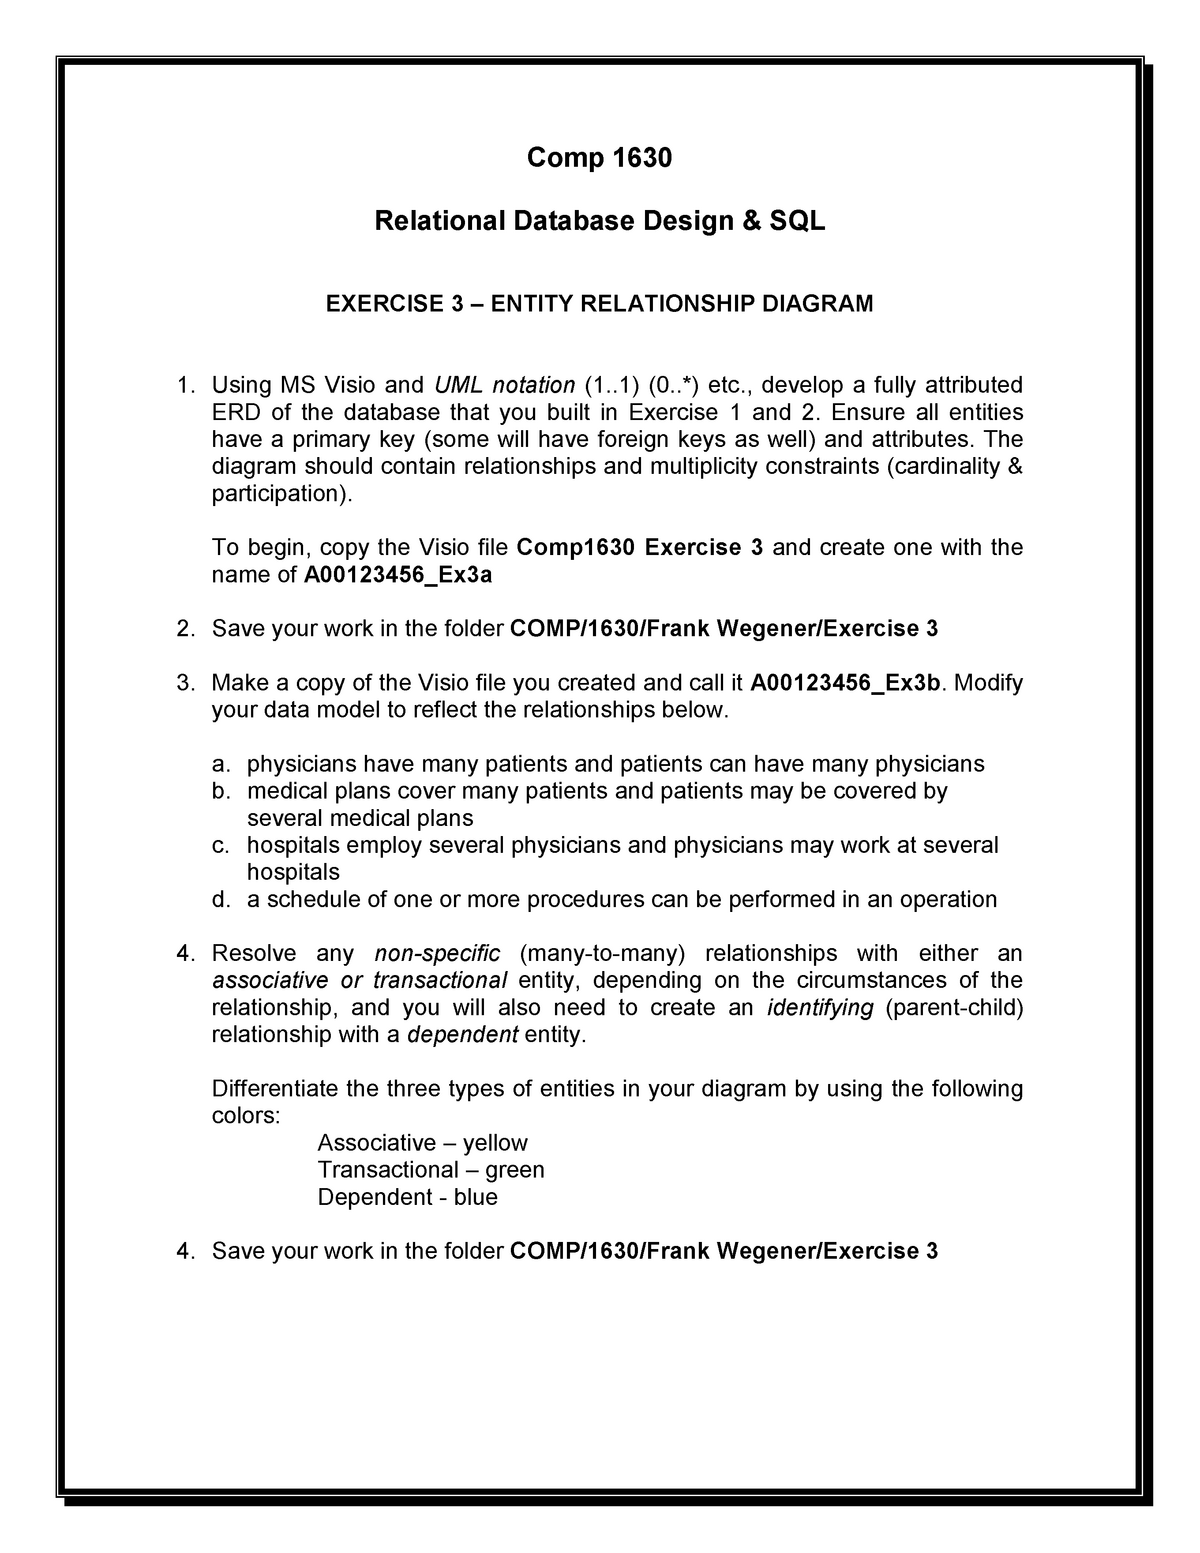 Comp 1630 Exercise 3 - COMP 1630: Relational Database Design